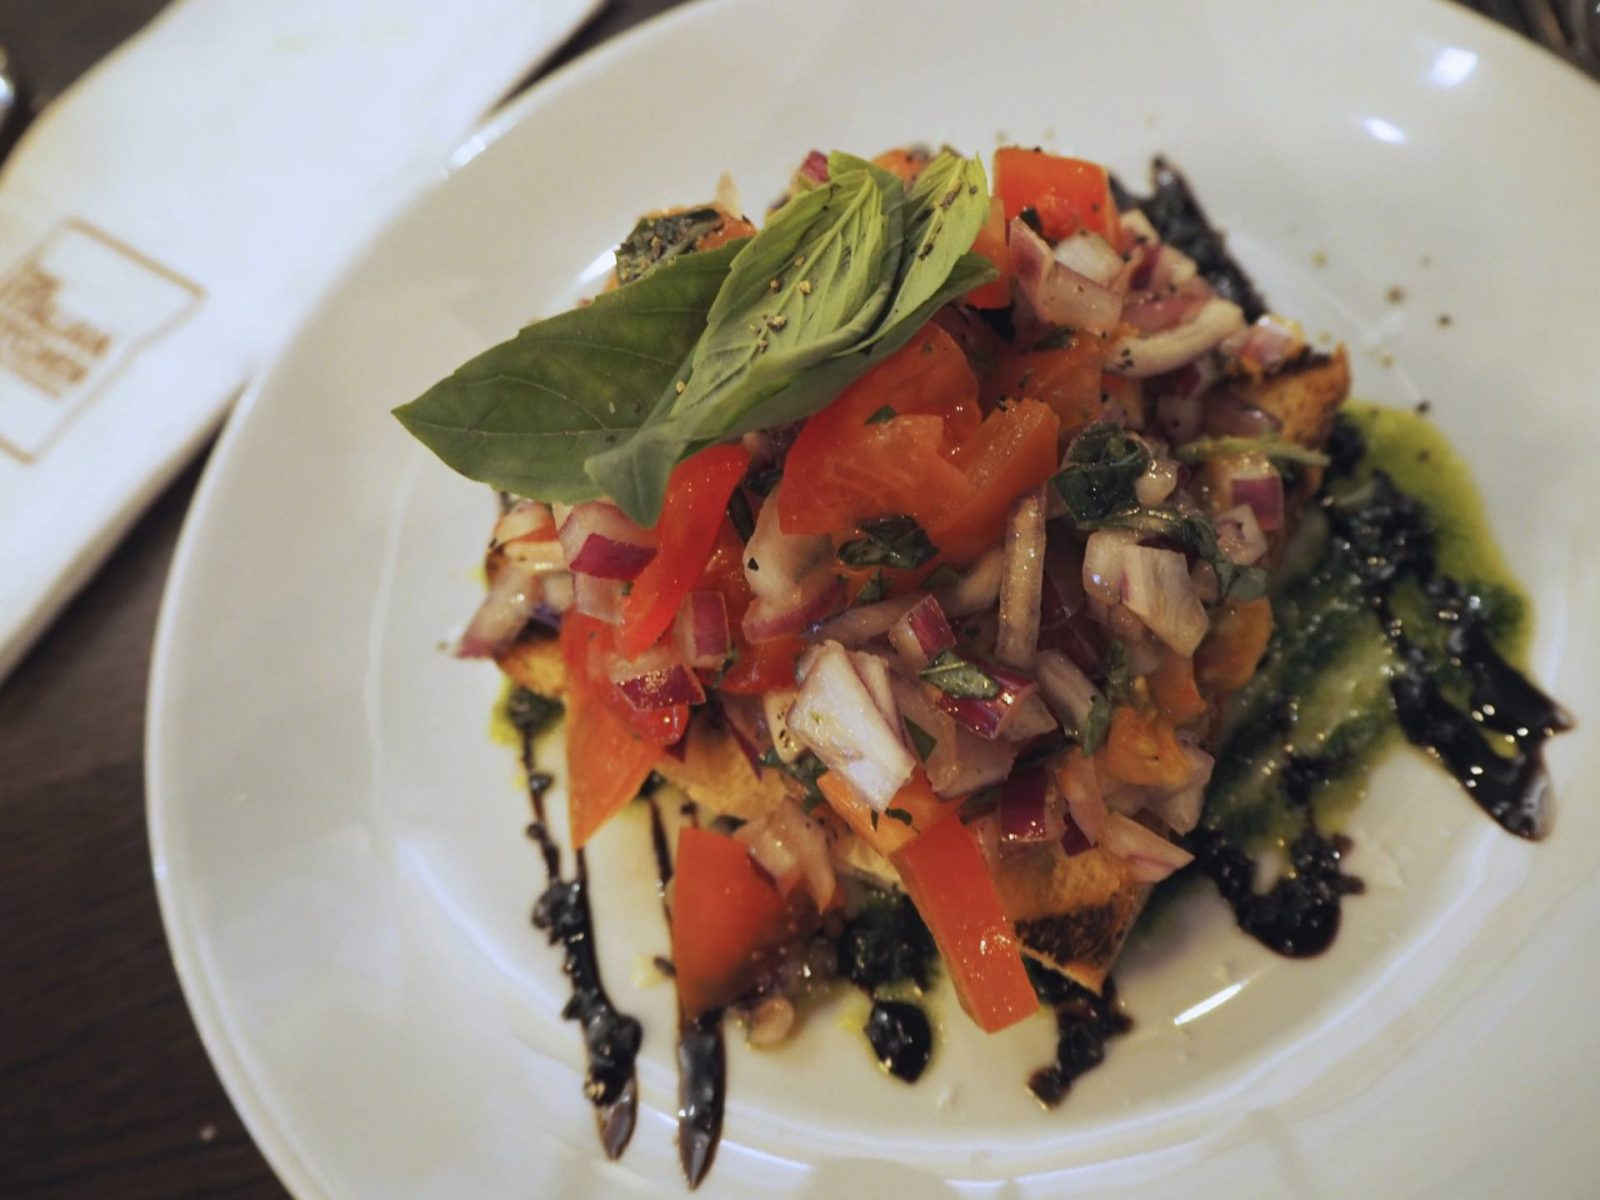 glasgow eats: the italian kitchen;